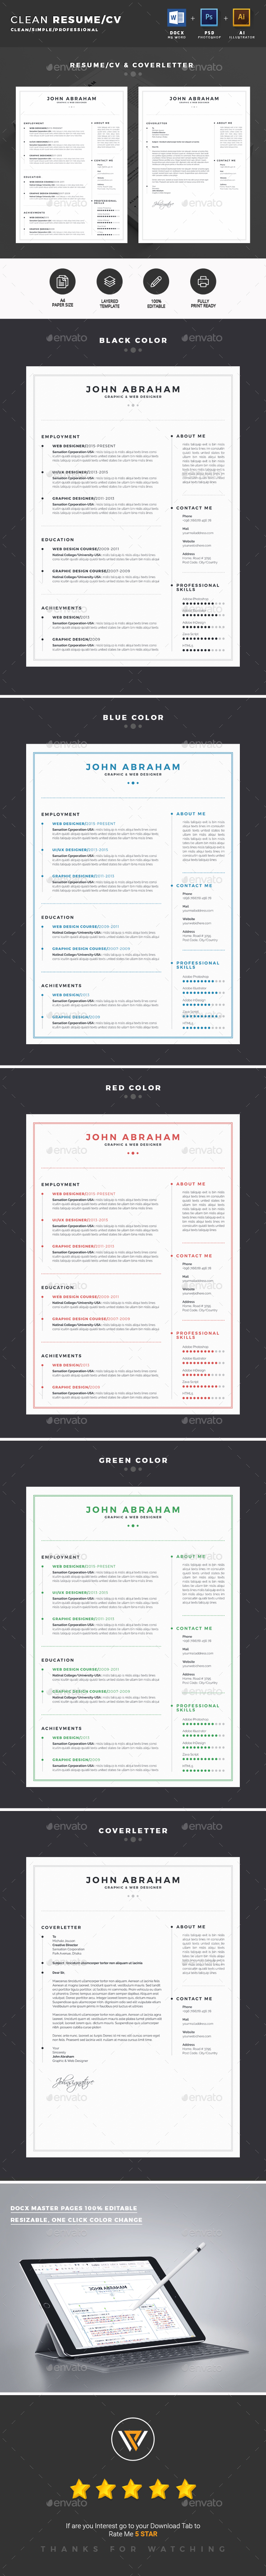 Clean Resume / CV Template PSD, AI, MS Word